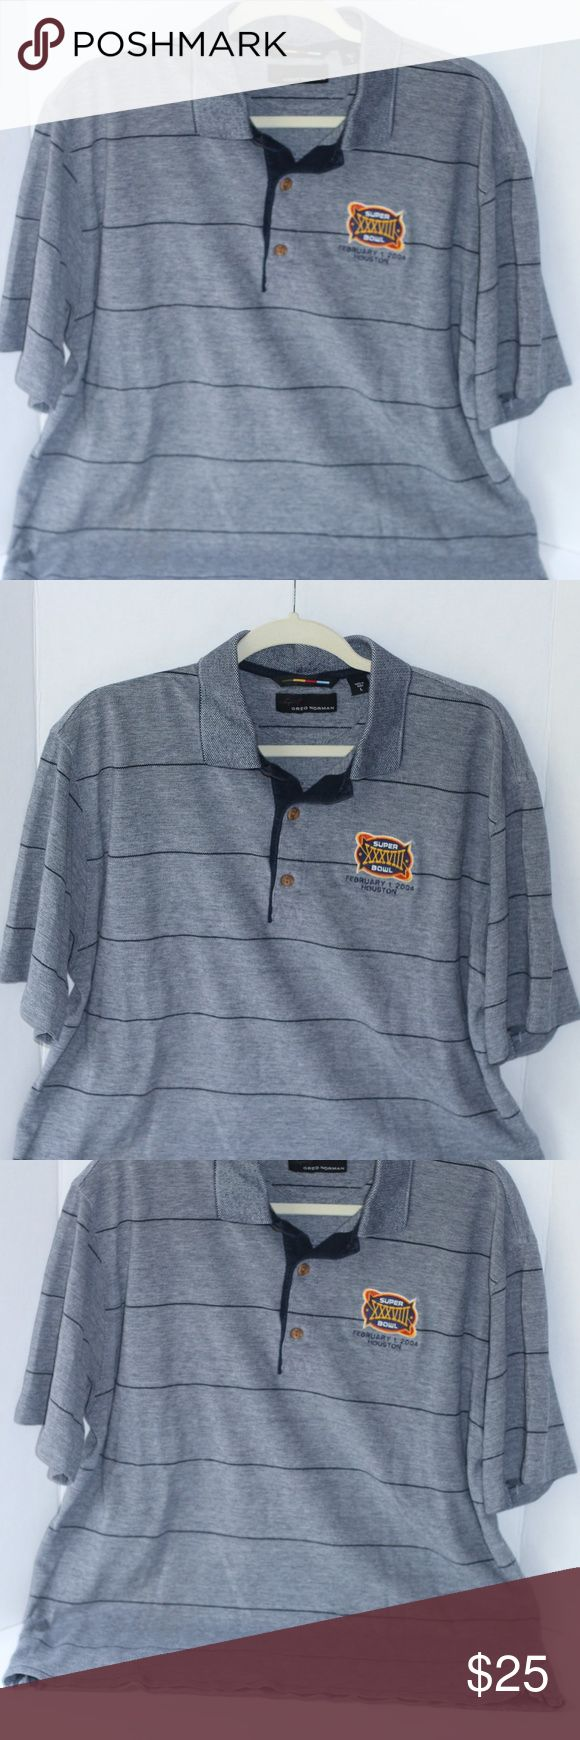 """Greg Norman Superbowl XXXVIII Polo Shirt Size L Pre-Loved but in excellent condition, Greg Norman Super Bowl XXXVIII Polo Shirt Size L. Color Dark and light navy blue with horizontal stripes. Brown buttons. 100% Cotton and replacement button included. Slight fuzz (sign of wear) in the inside of the neck area but barely visible. Made in Peru. Approx 22"""" from armpit to armpit and approx. 27"""" from shoulder to hem. Greg Norman Shirts Polos"""